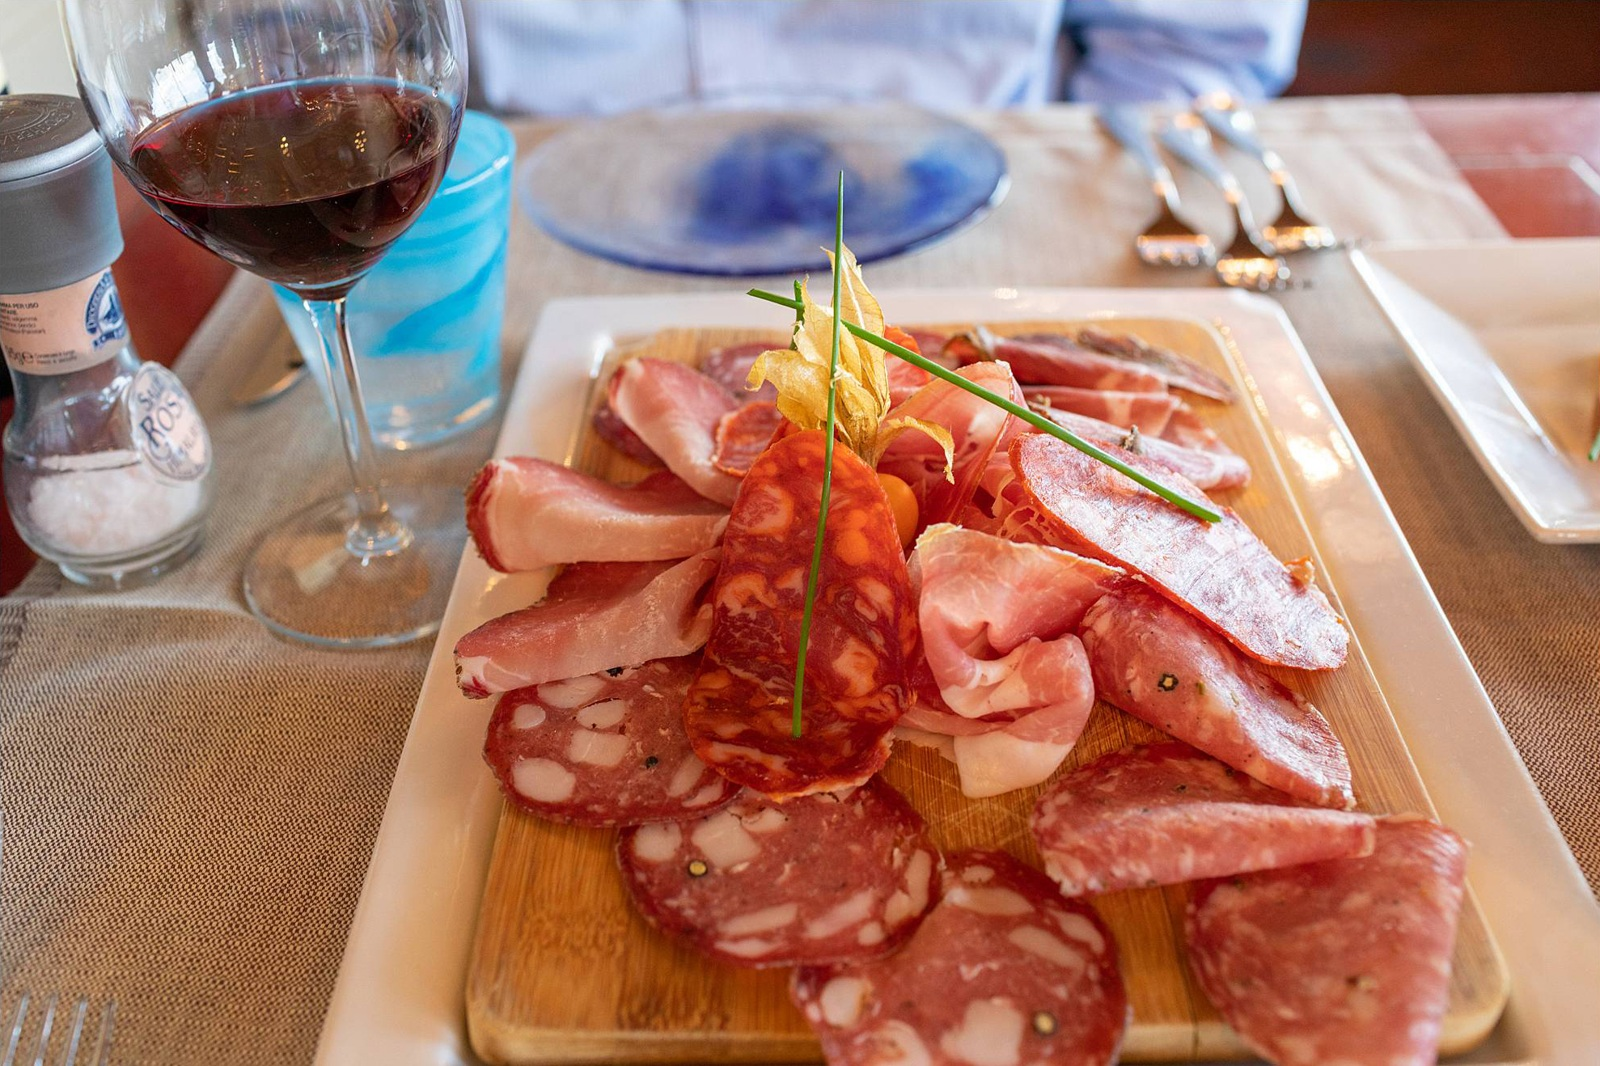 Charcuterie board and red wine